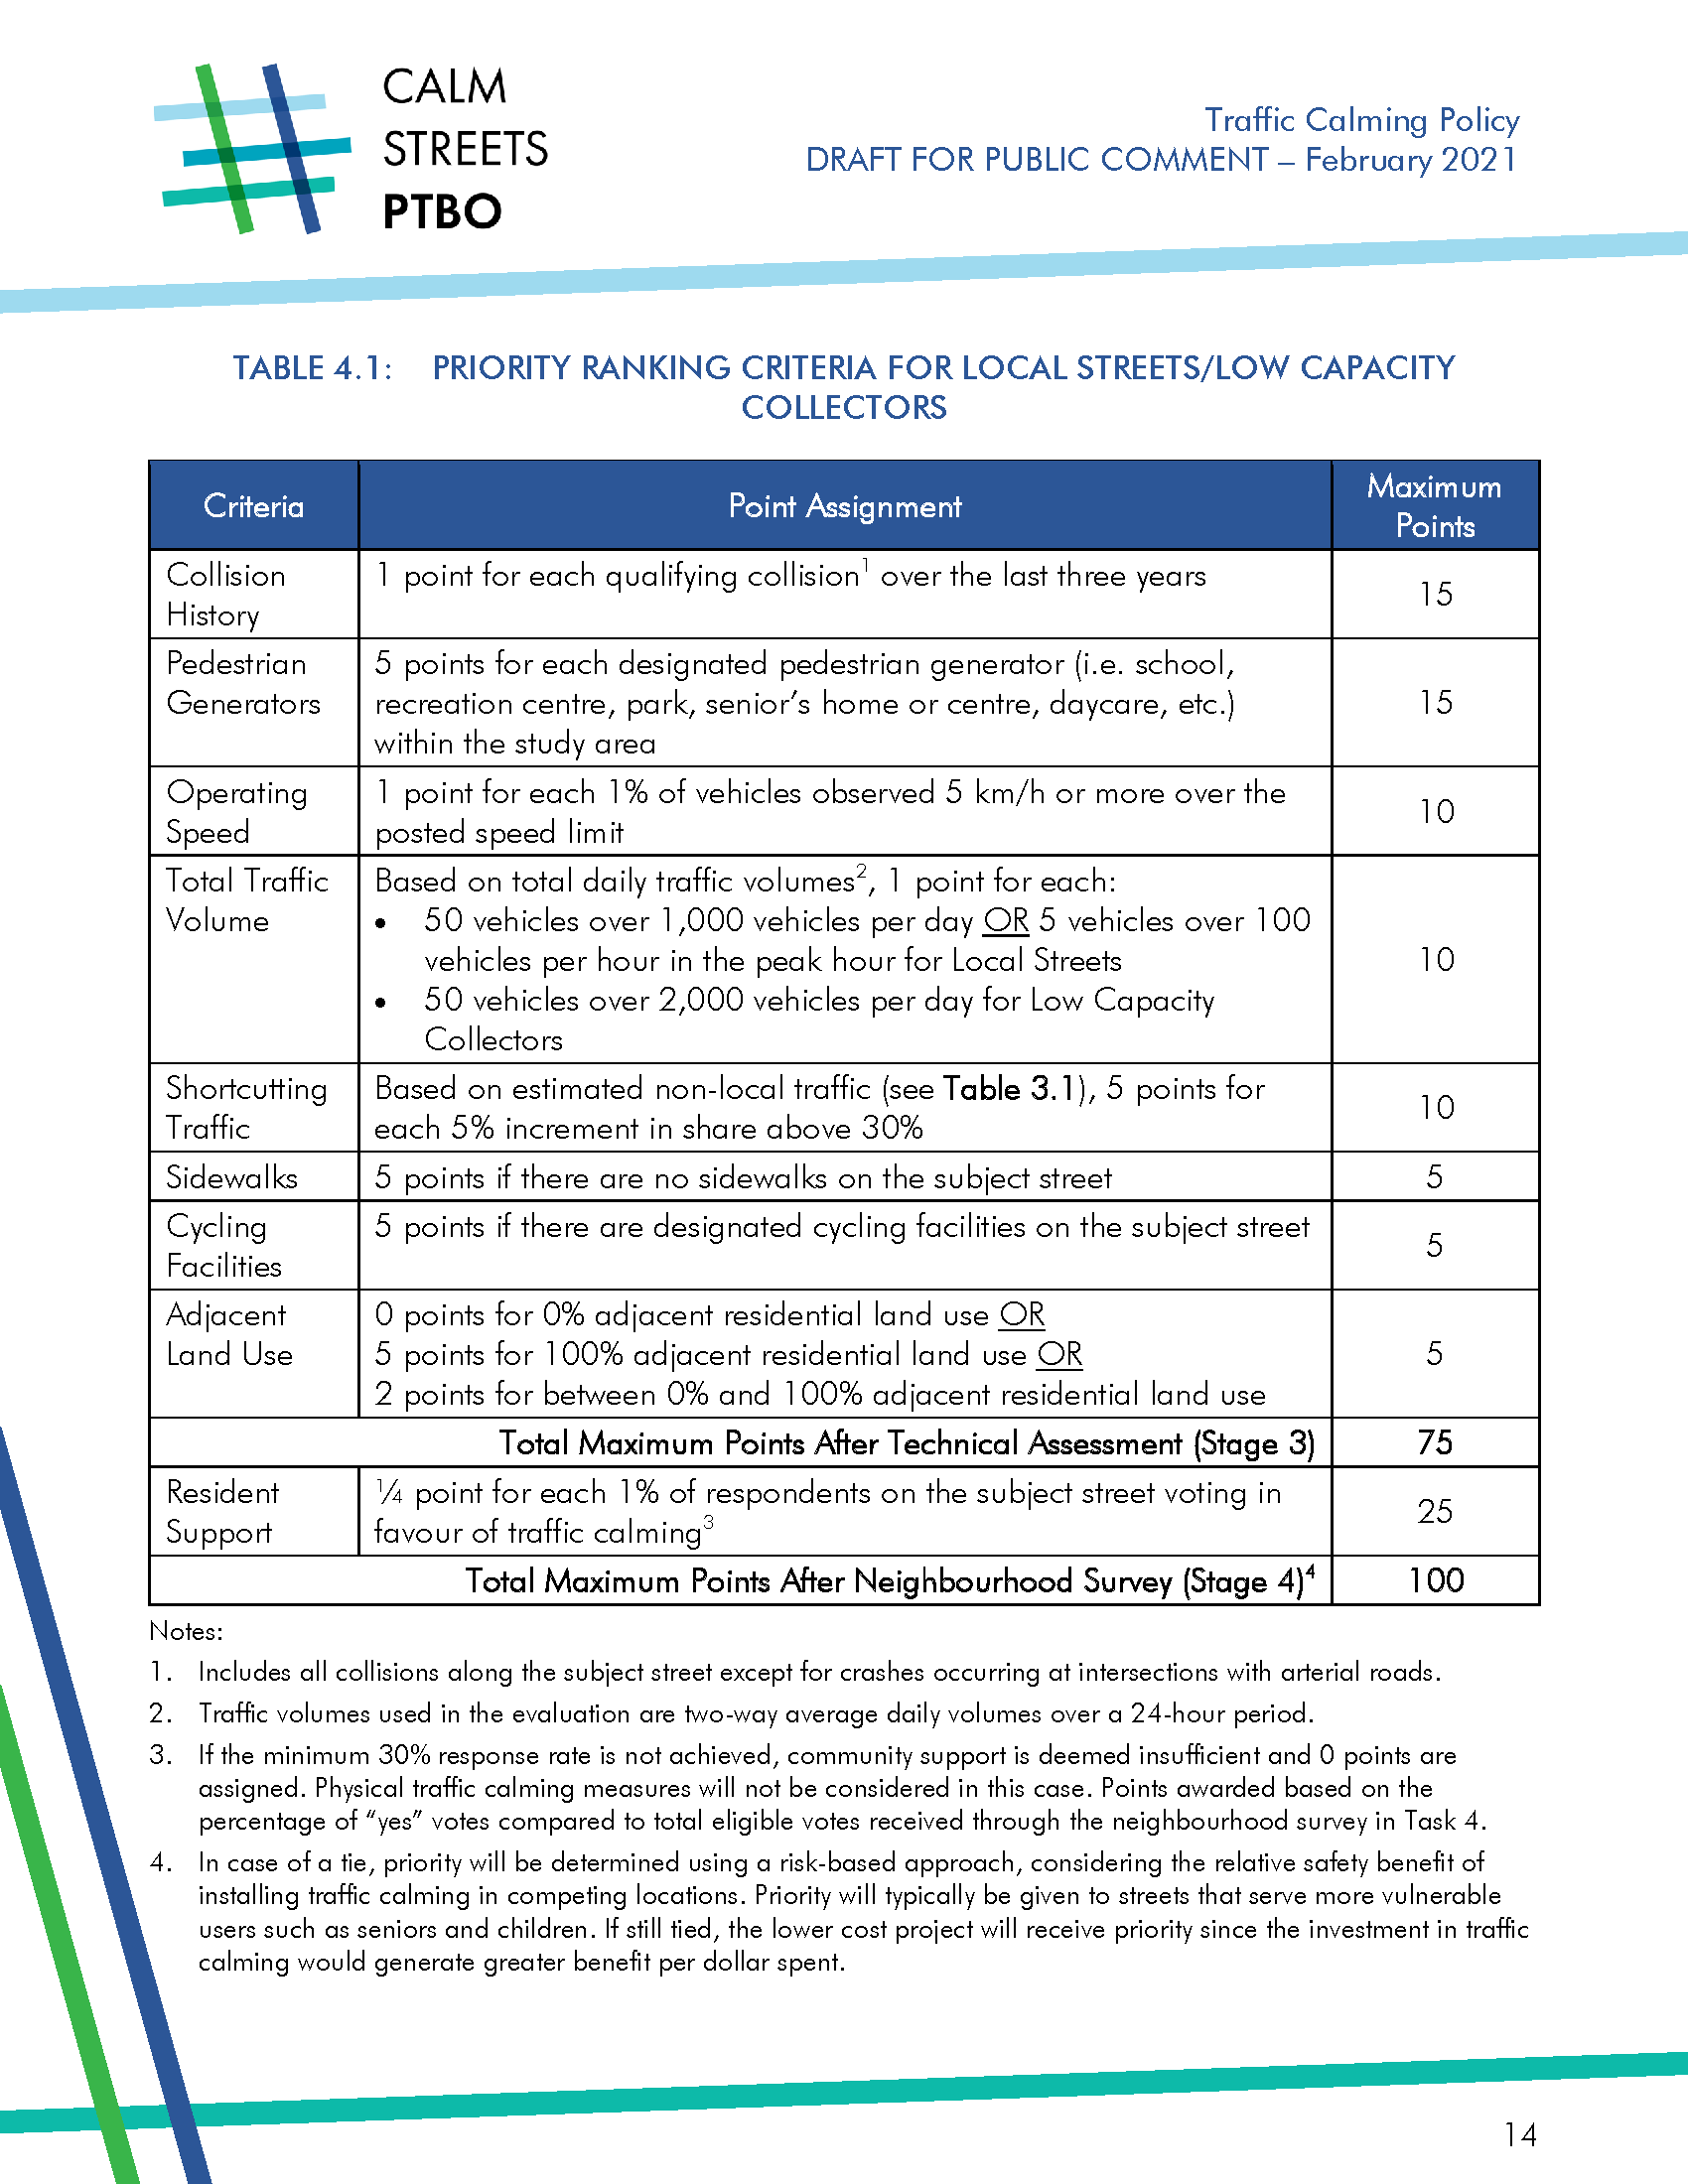 Prioritization Criteria for Local Streets and Low Capacity Collectors